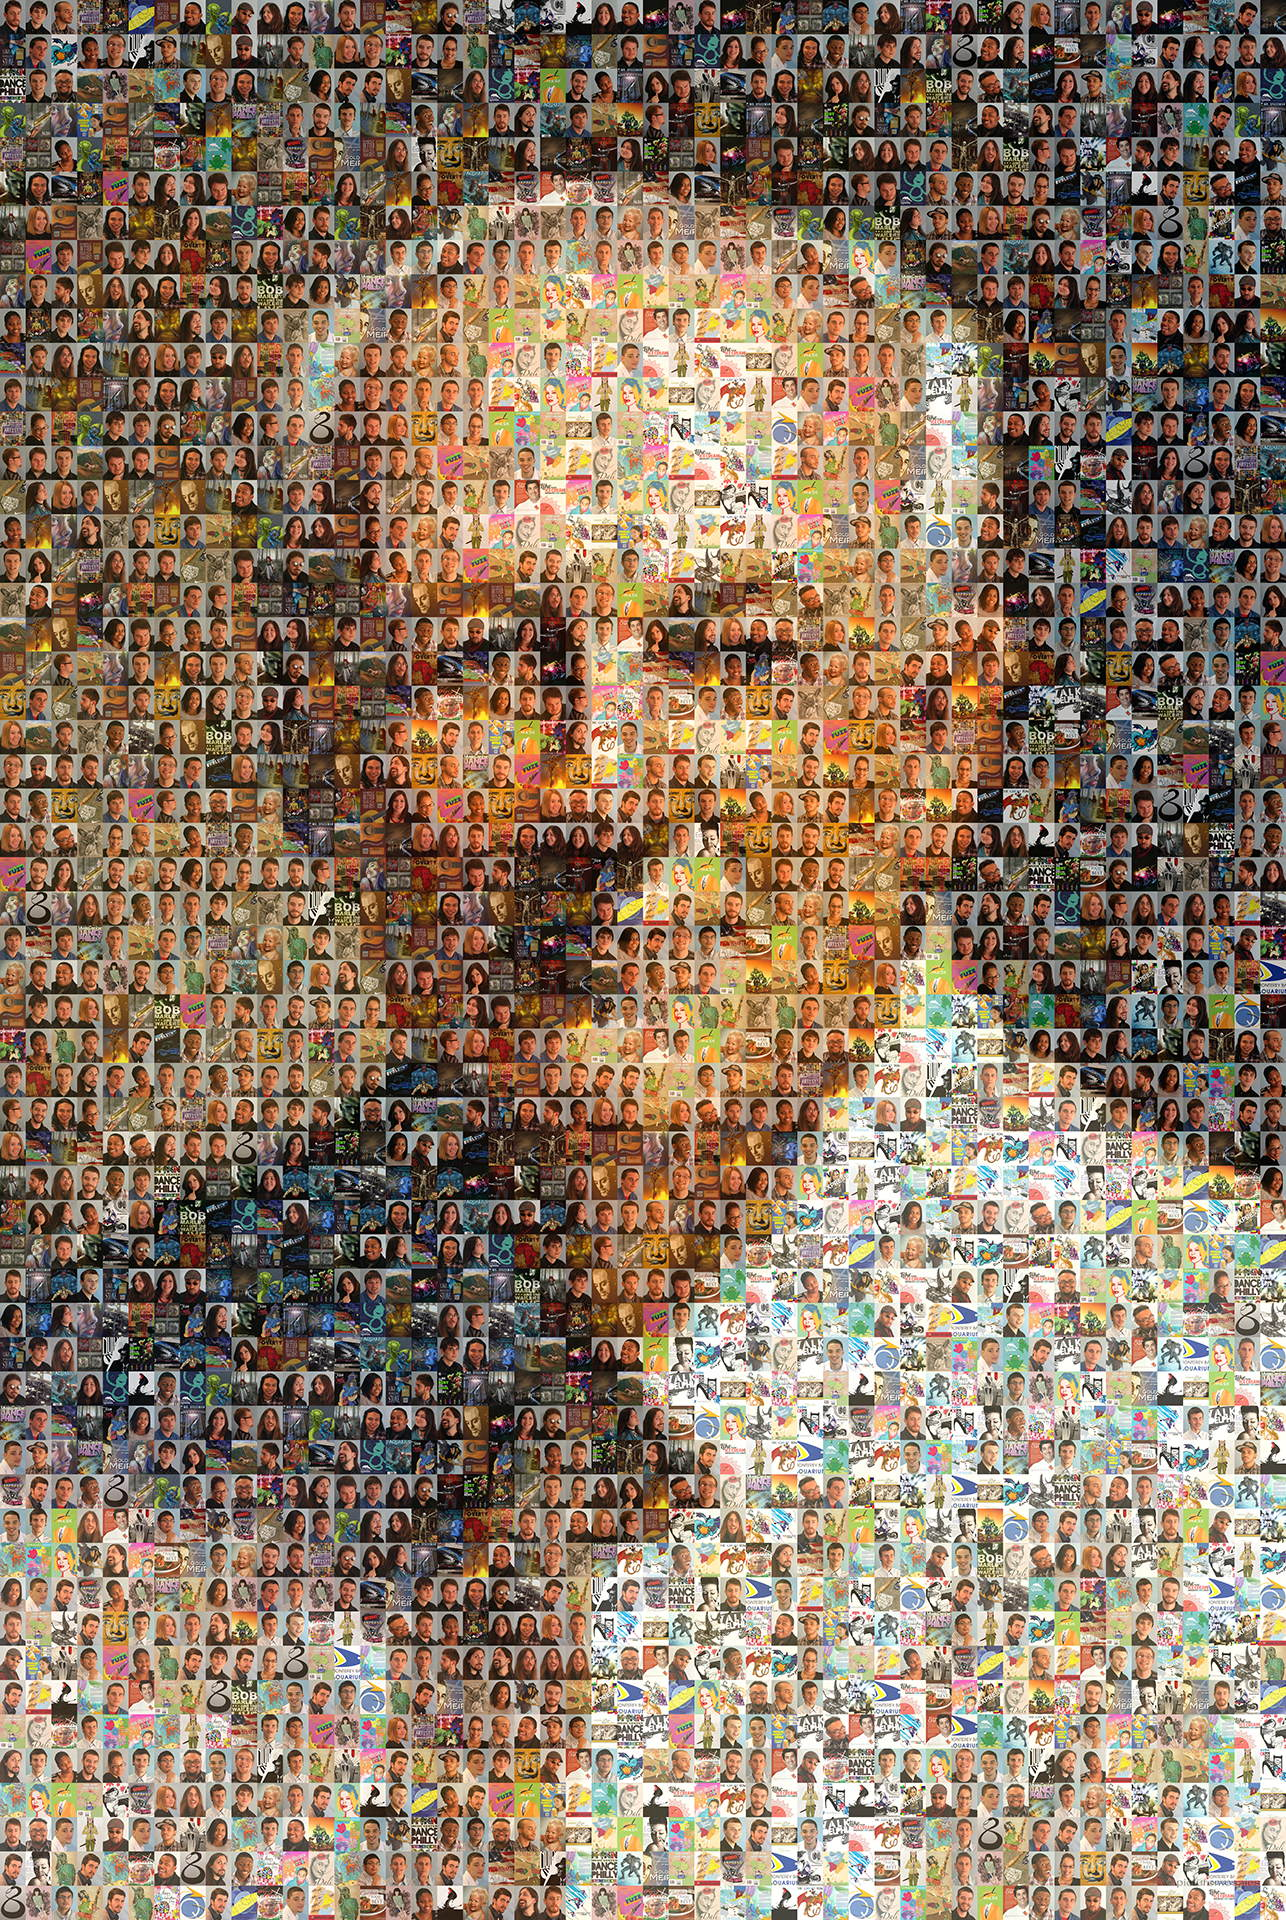 photo mosaic created using 156 student photos and their artwork